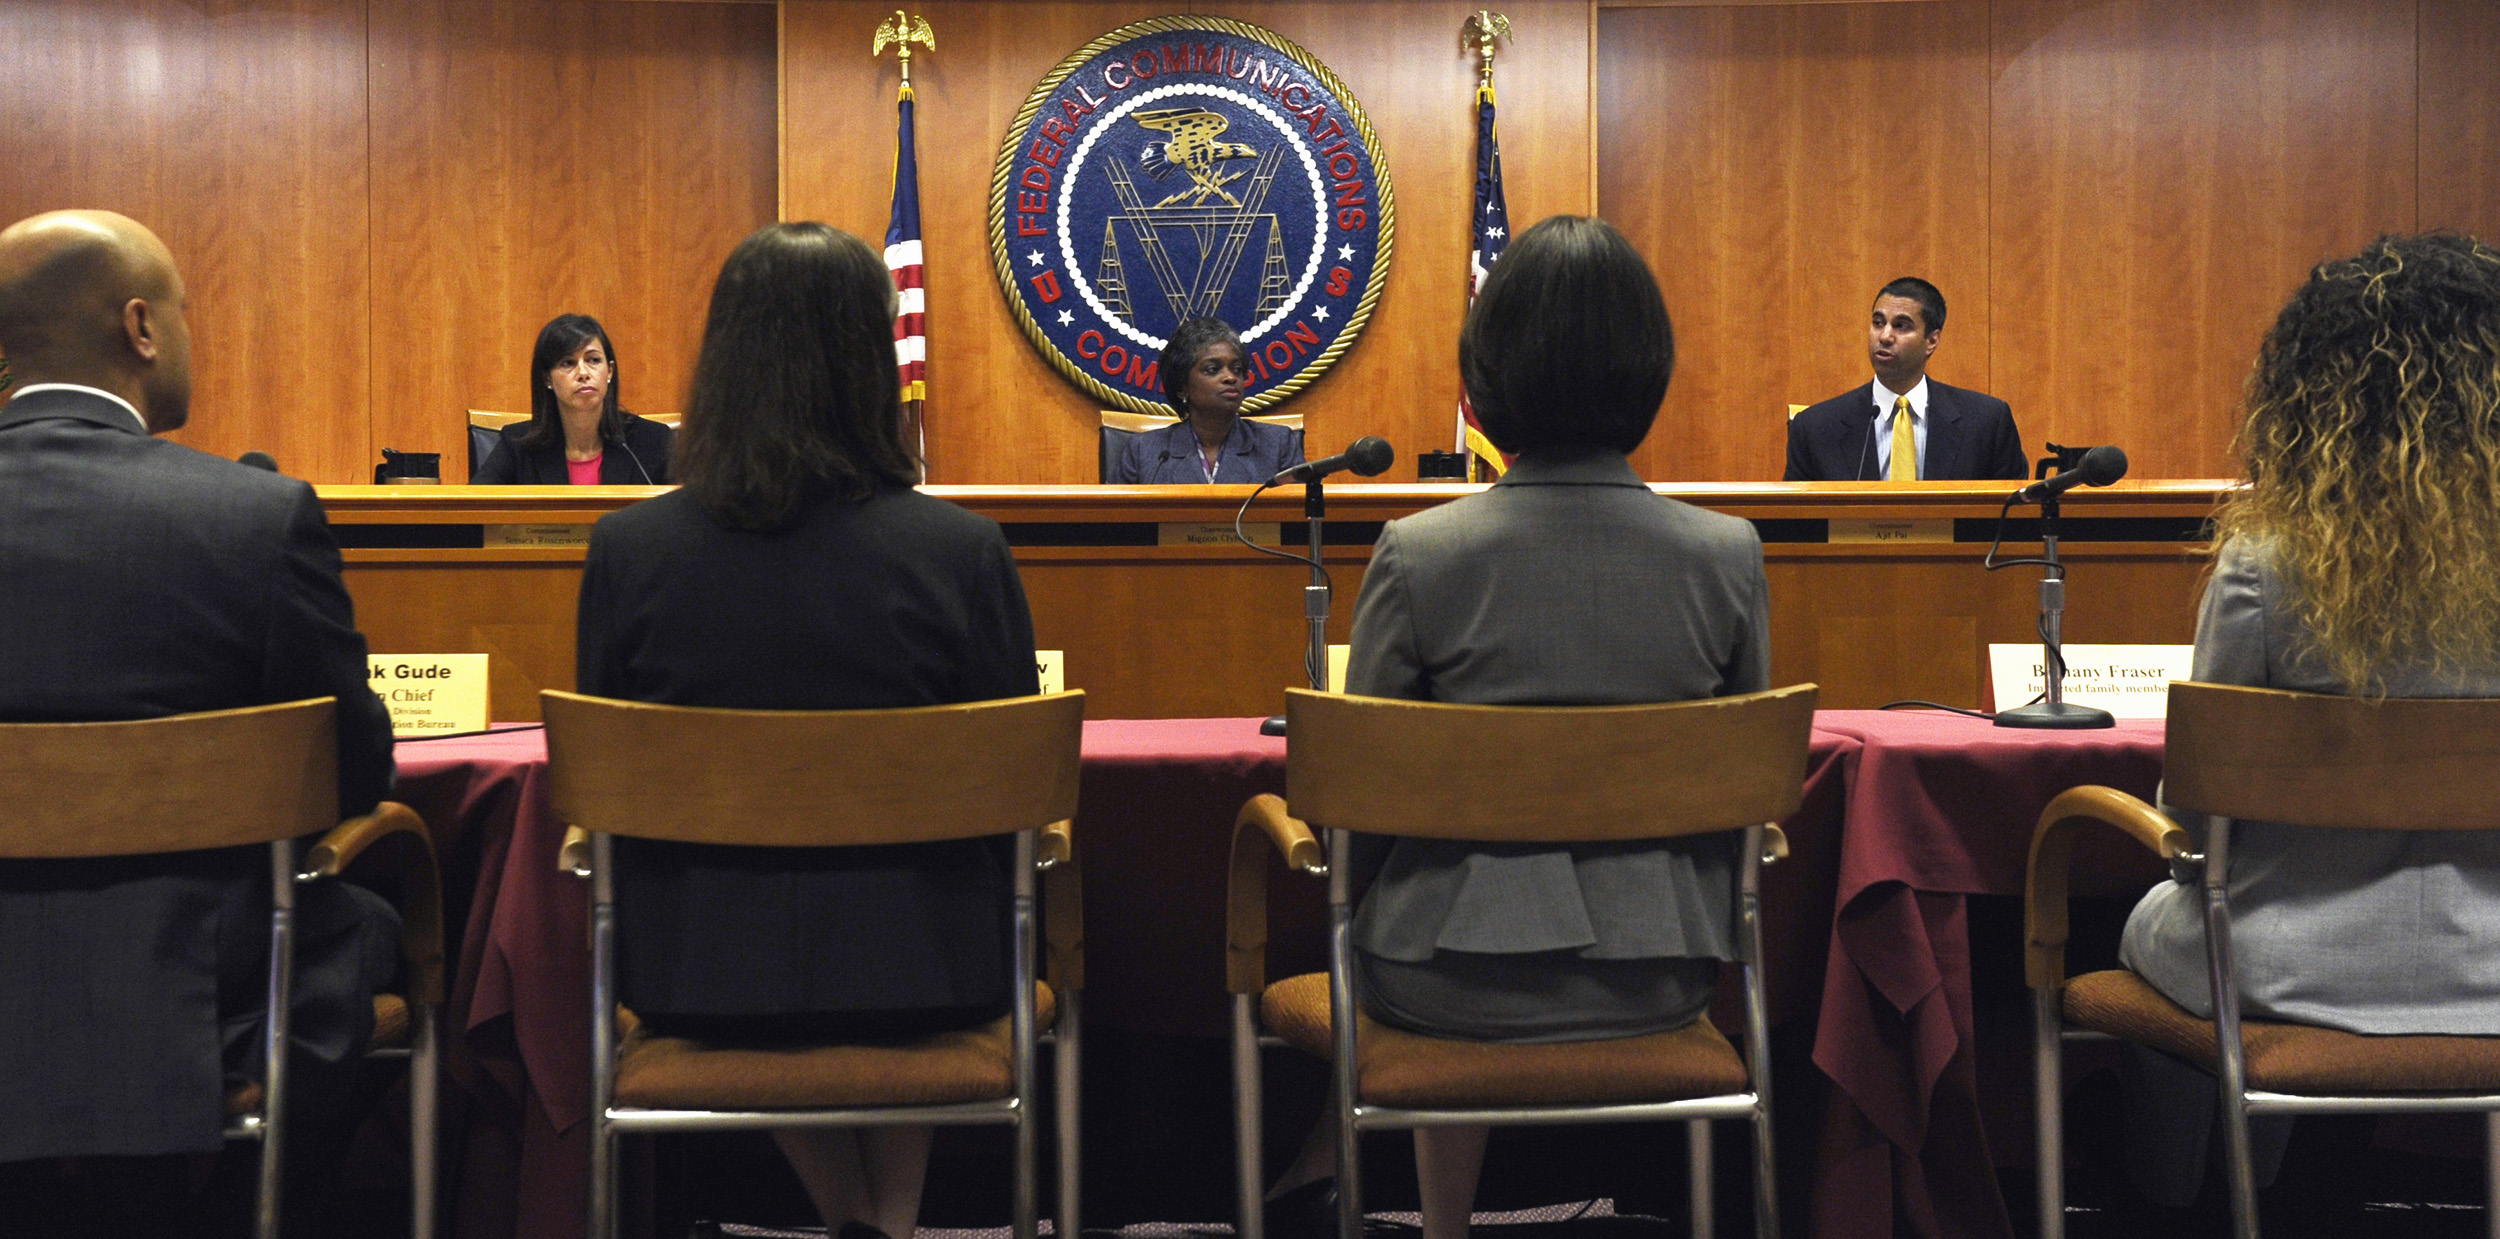 Federal Communications Commission (FCC) Chair Mingon Clyburn, center, flanked by Commissioners Jessica Rosenworcel, left, and Ajit Pai, participates in a hearing at the FCC in Washington, Friday, Aug. 9, 2013. The FCC approved limits on rates that prison inmates pay to make phone calls. The FCC voted 2-1 Friday - a decade after inmates' families asked for action.  (AP Photo/Susan Walsh)